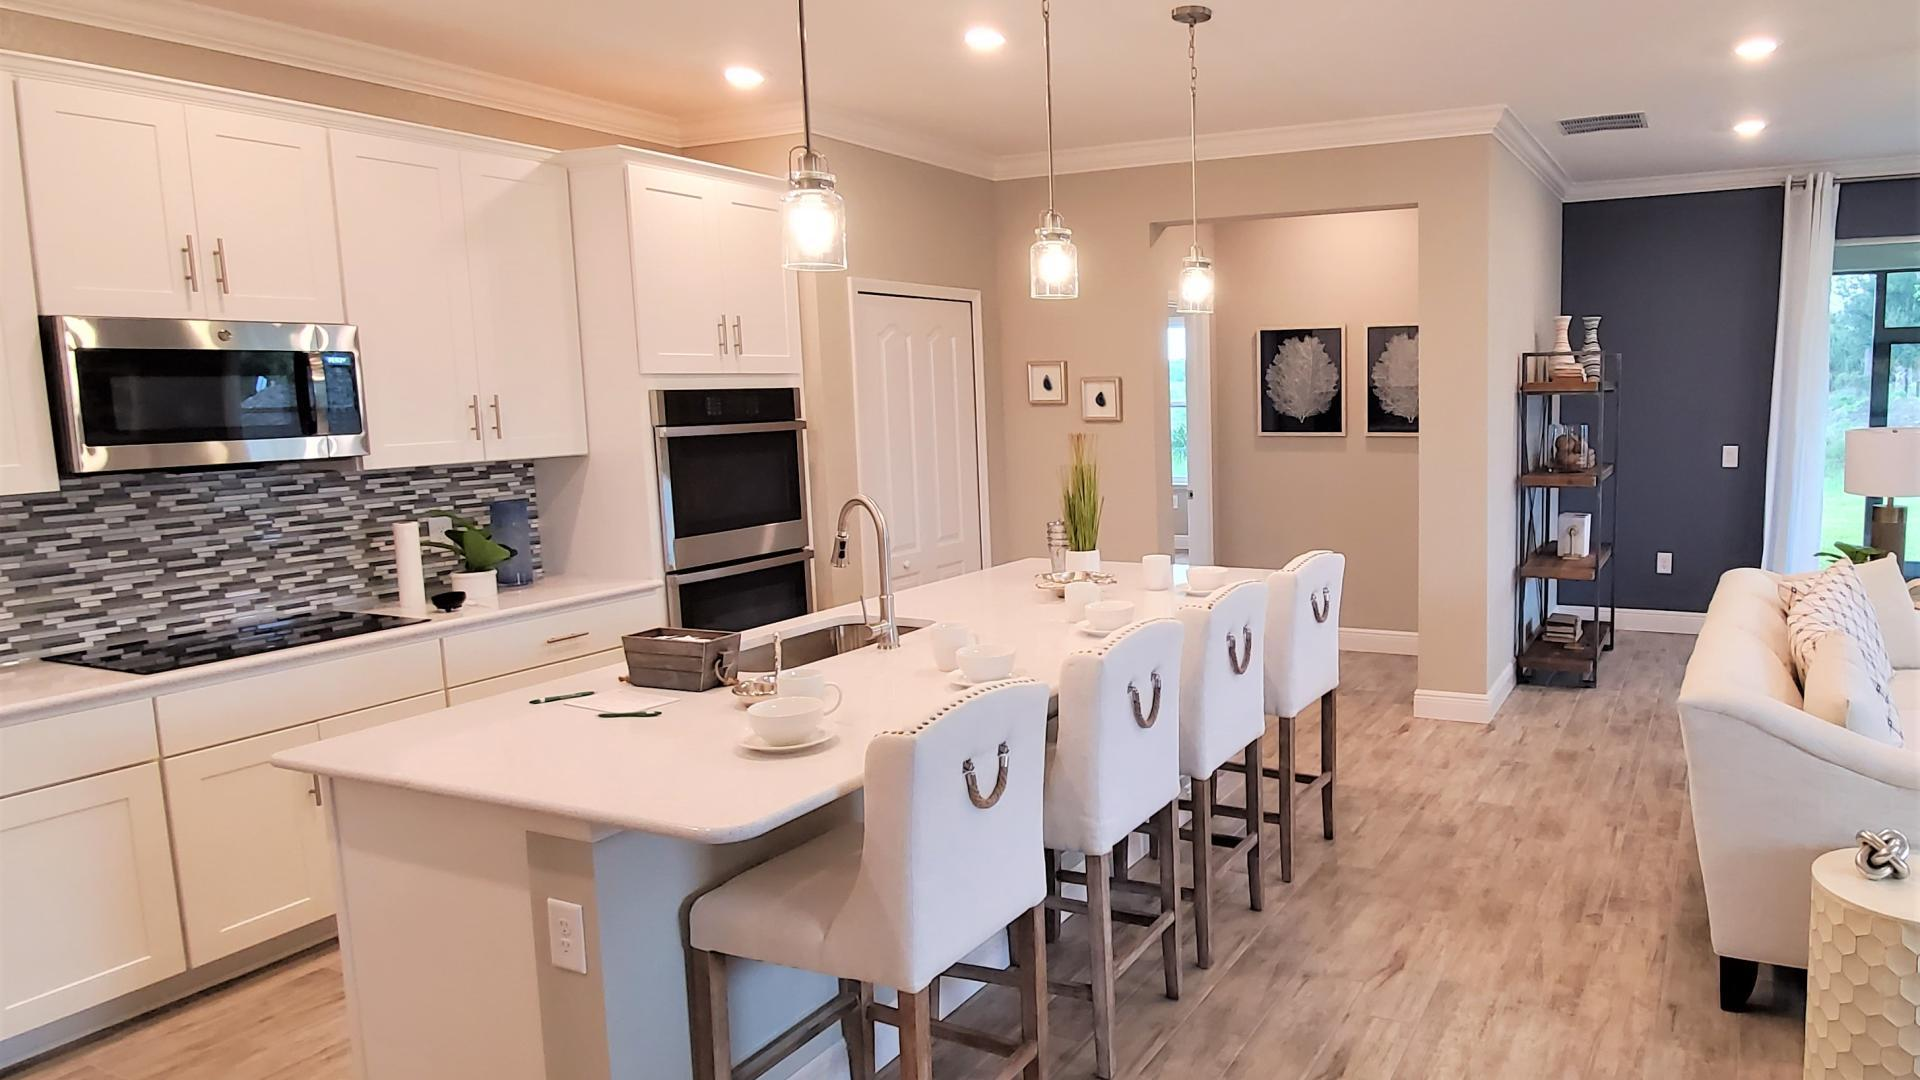 Kitchen featured in the Miramar By Maronda Homes in Fort Myers, FL